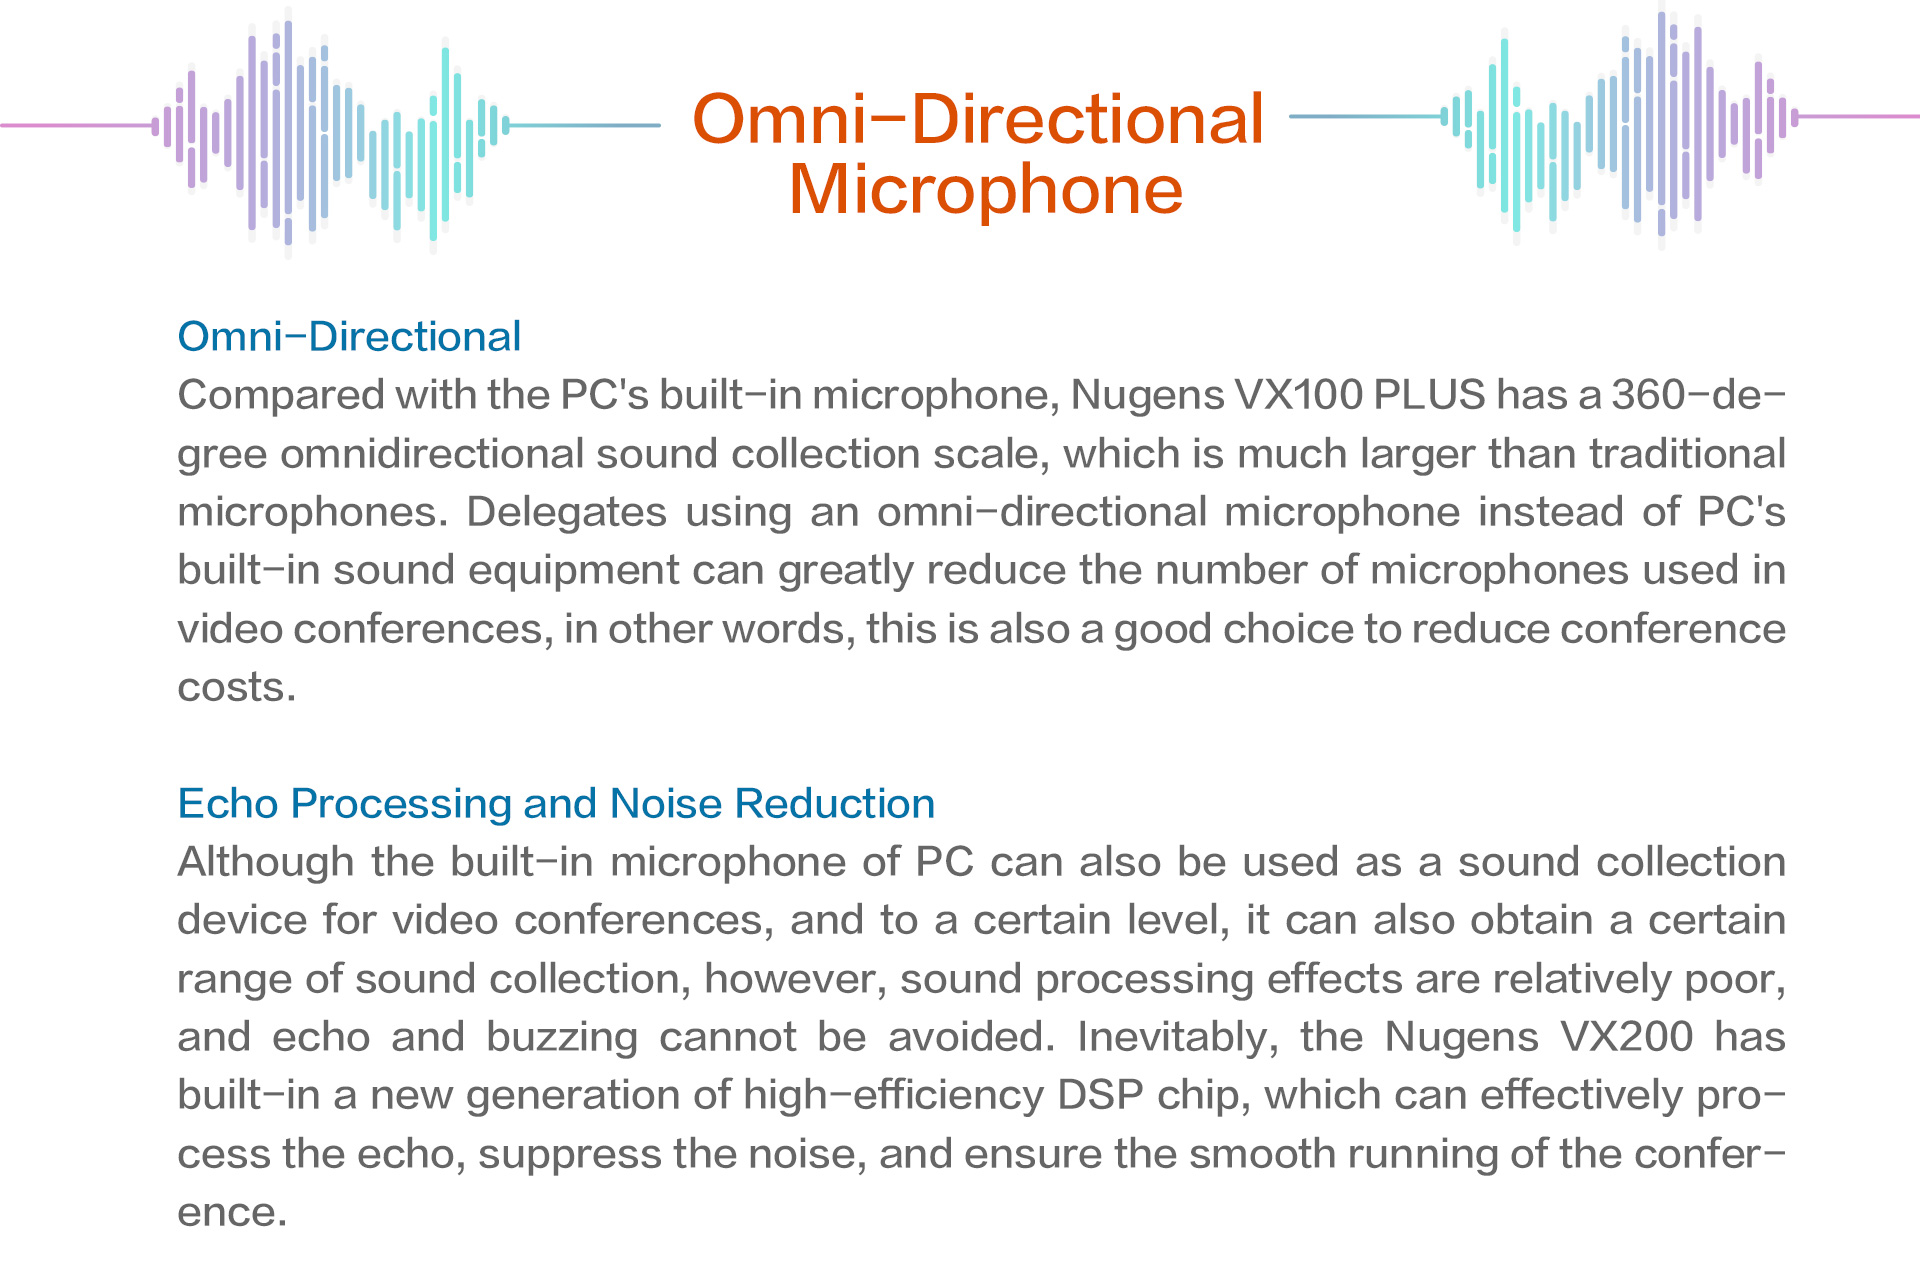 Omni-Directional Microphone